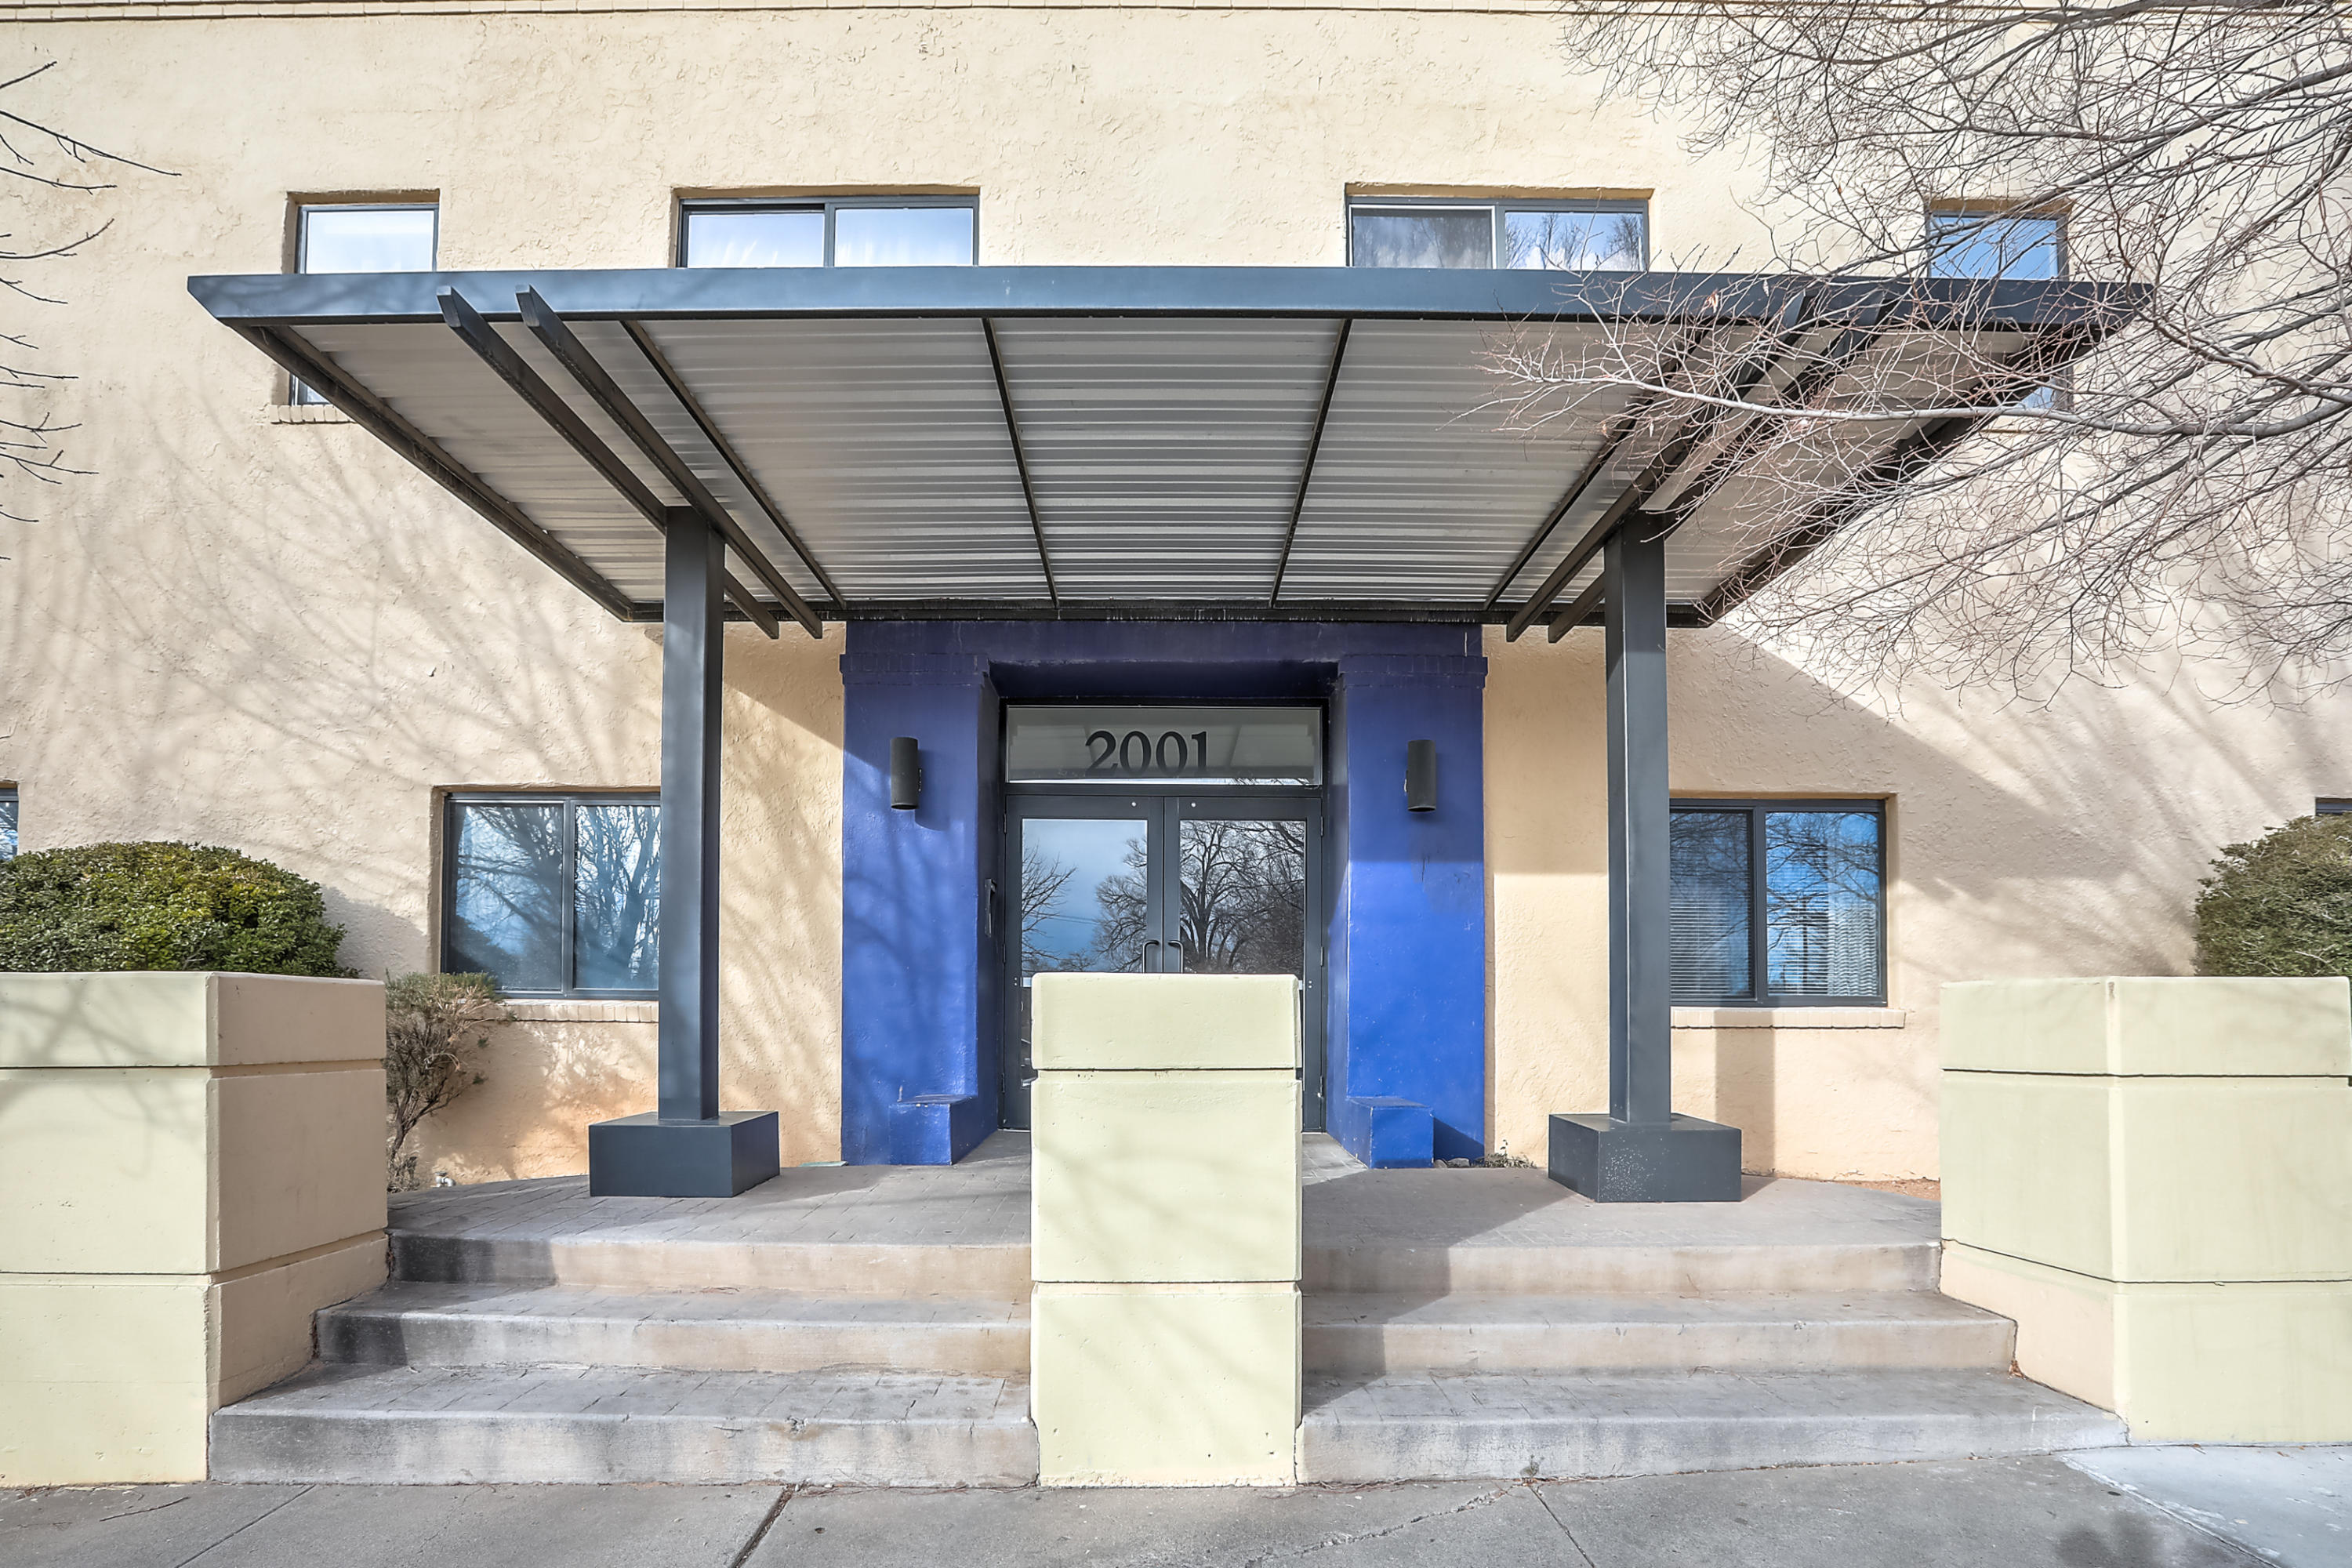 Public Remarks: Amazing opportunity to own a modern condo within .25 mile of UNM. All the convenience of Midtown/University area and has hotels and restaurants that are conveniently located near the I-25/I-40 (Big I) interchange. Beautiful granite countertops with clerestory windows. Huge skylight lets in lots of natural light . You will fall in love with the open architecture of loft living. Currently a tenant with lease until July 2021. Unit will convey with washer & dryer and has refrigerated air. No property disclosure. Property is being sold ''AS IS''. Viewings of the property subject to an accepted offer, and 24 hours notice.